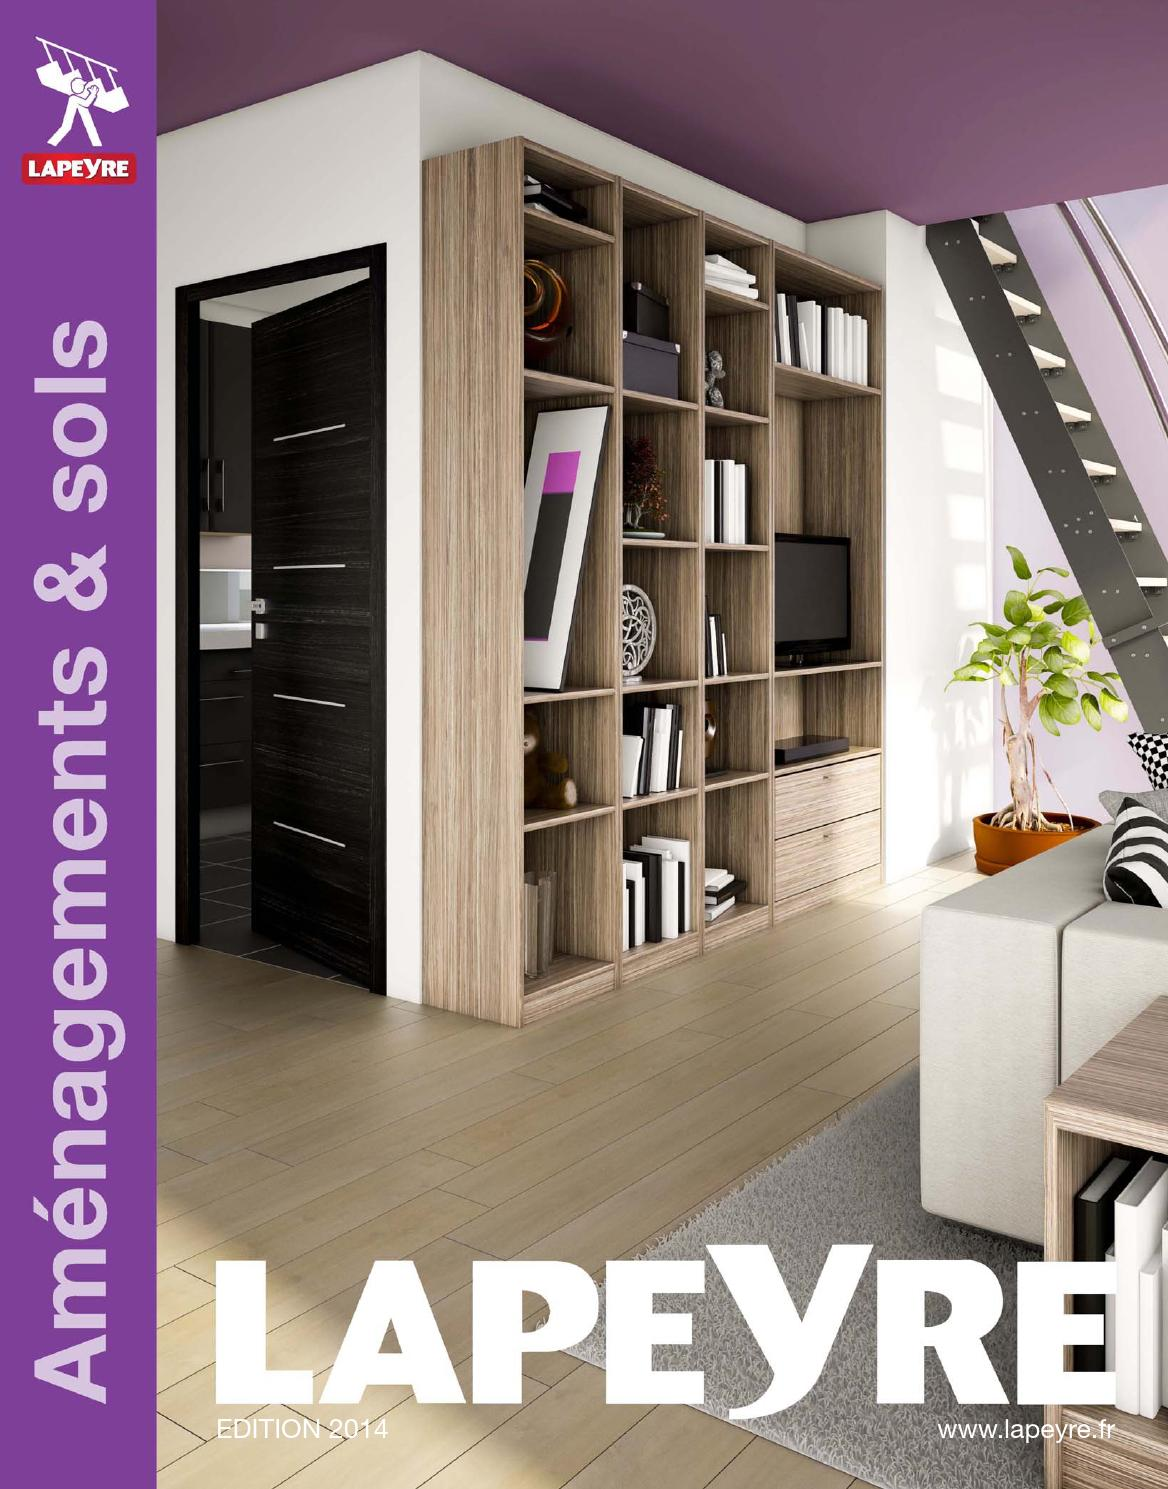 Catalogue Lapeyre Amenagements Sols 2014 By Joe Monroe Issuu